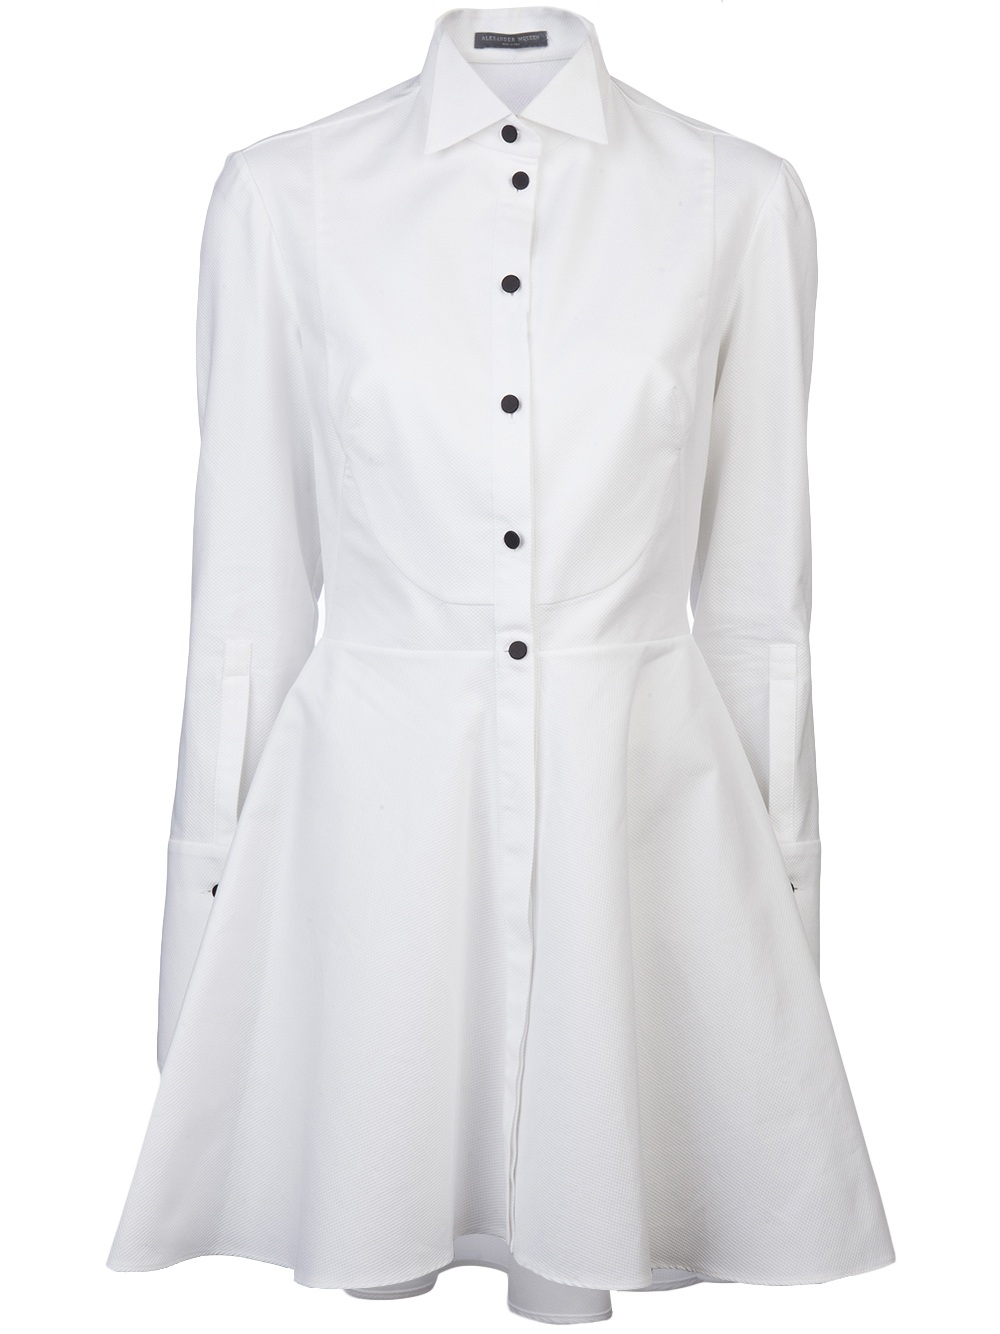 Wonderful WOMEN Black Dress Shirt White Polka Dots Braid  Dress Shirts For Men